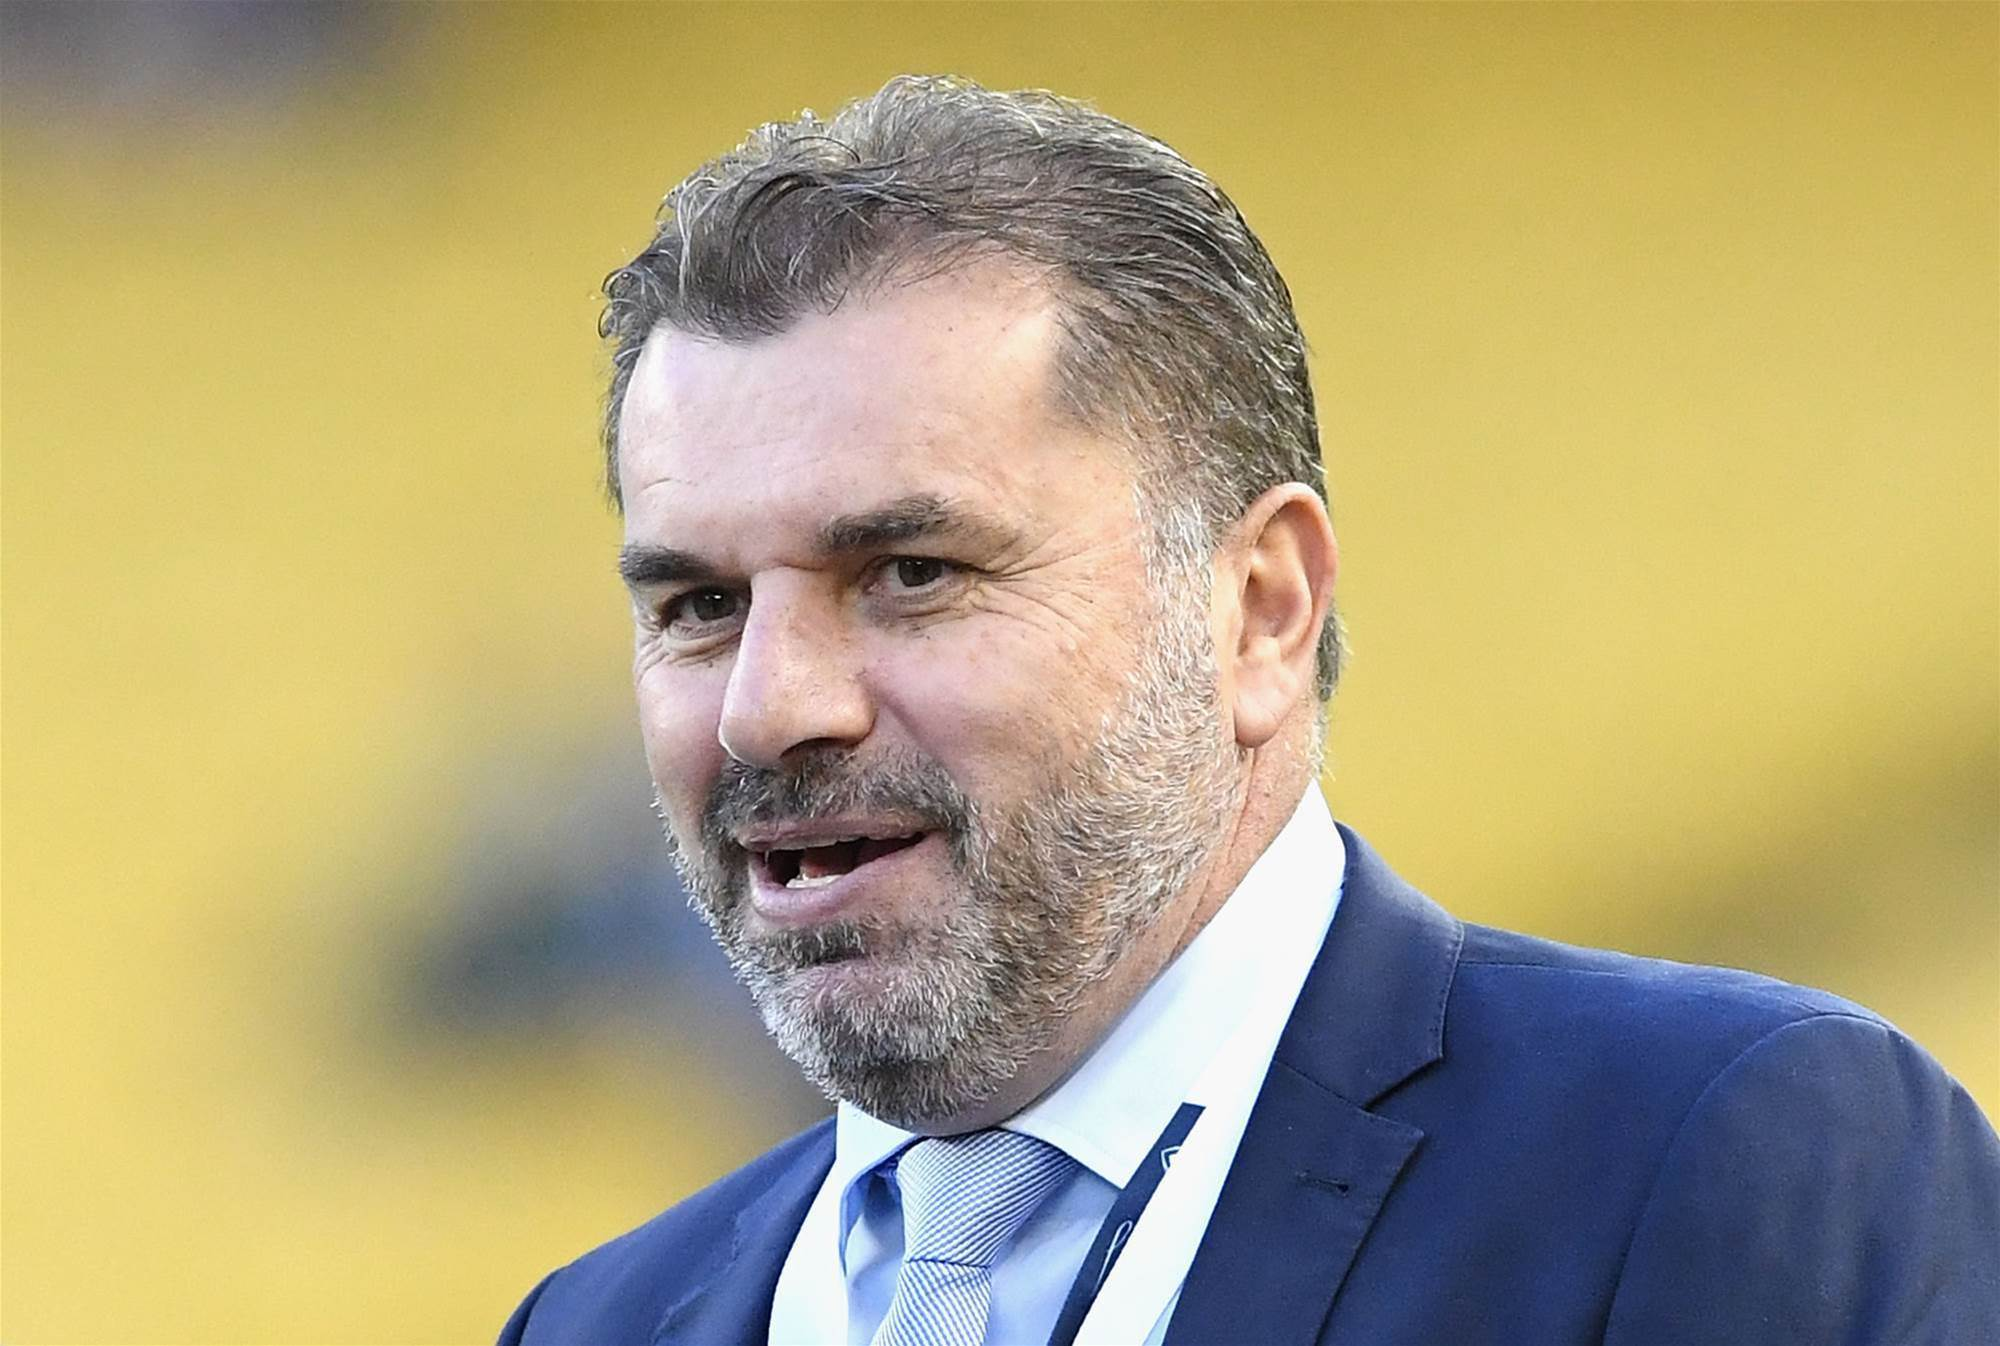 Postecoglou: People think they know me, but they don't